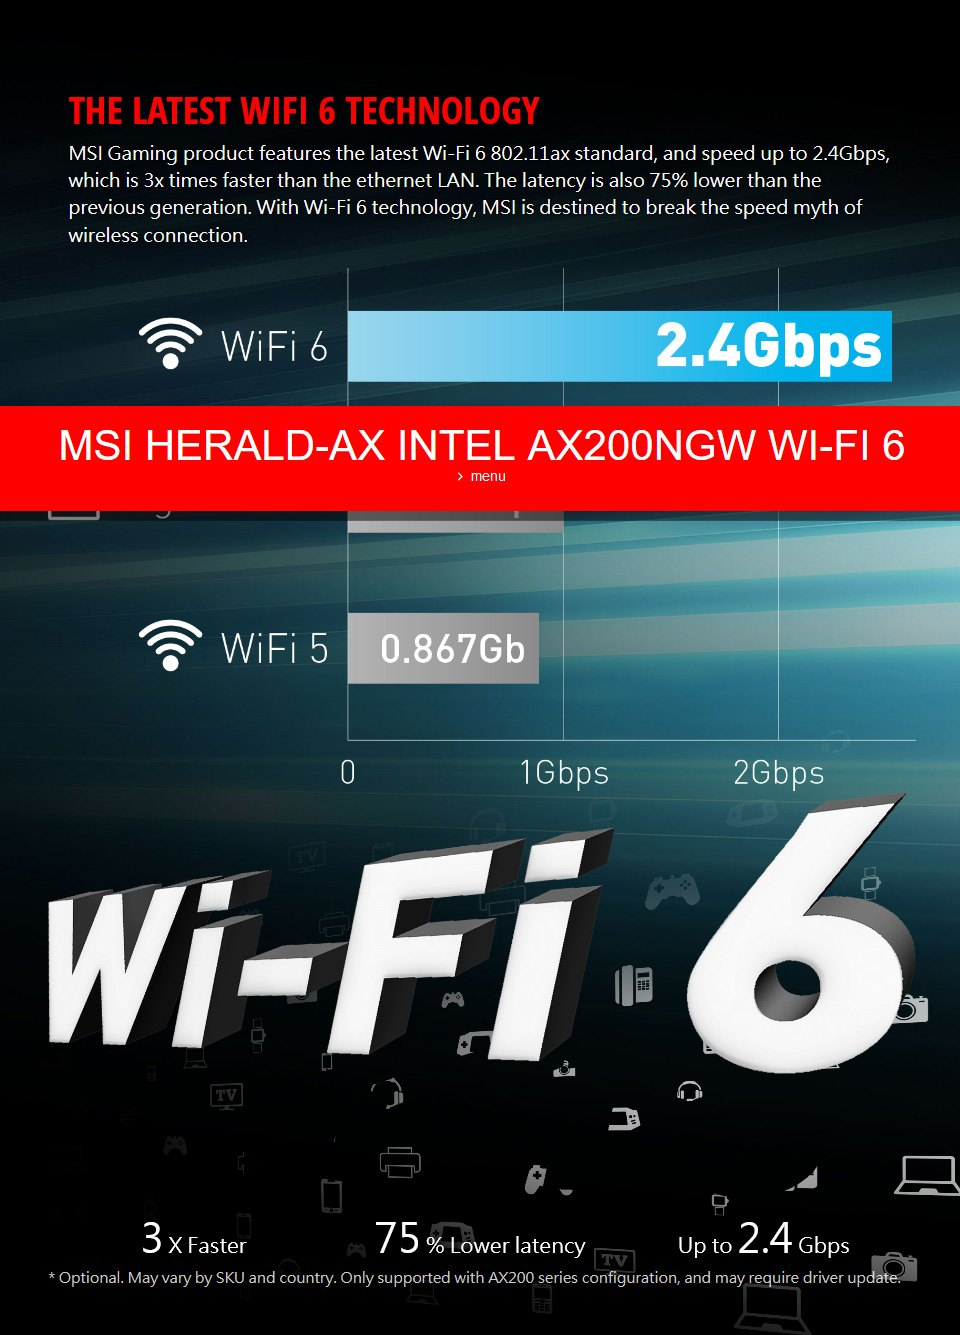 MSI Herald-AX Intel AC AX200NGW PCI-E Network Adapter features